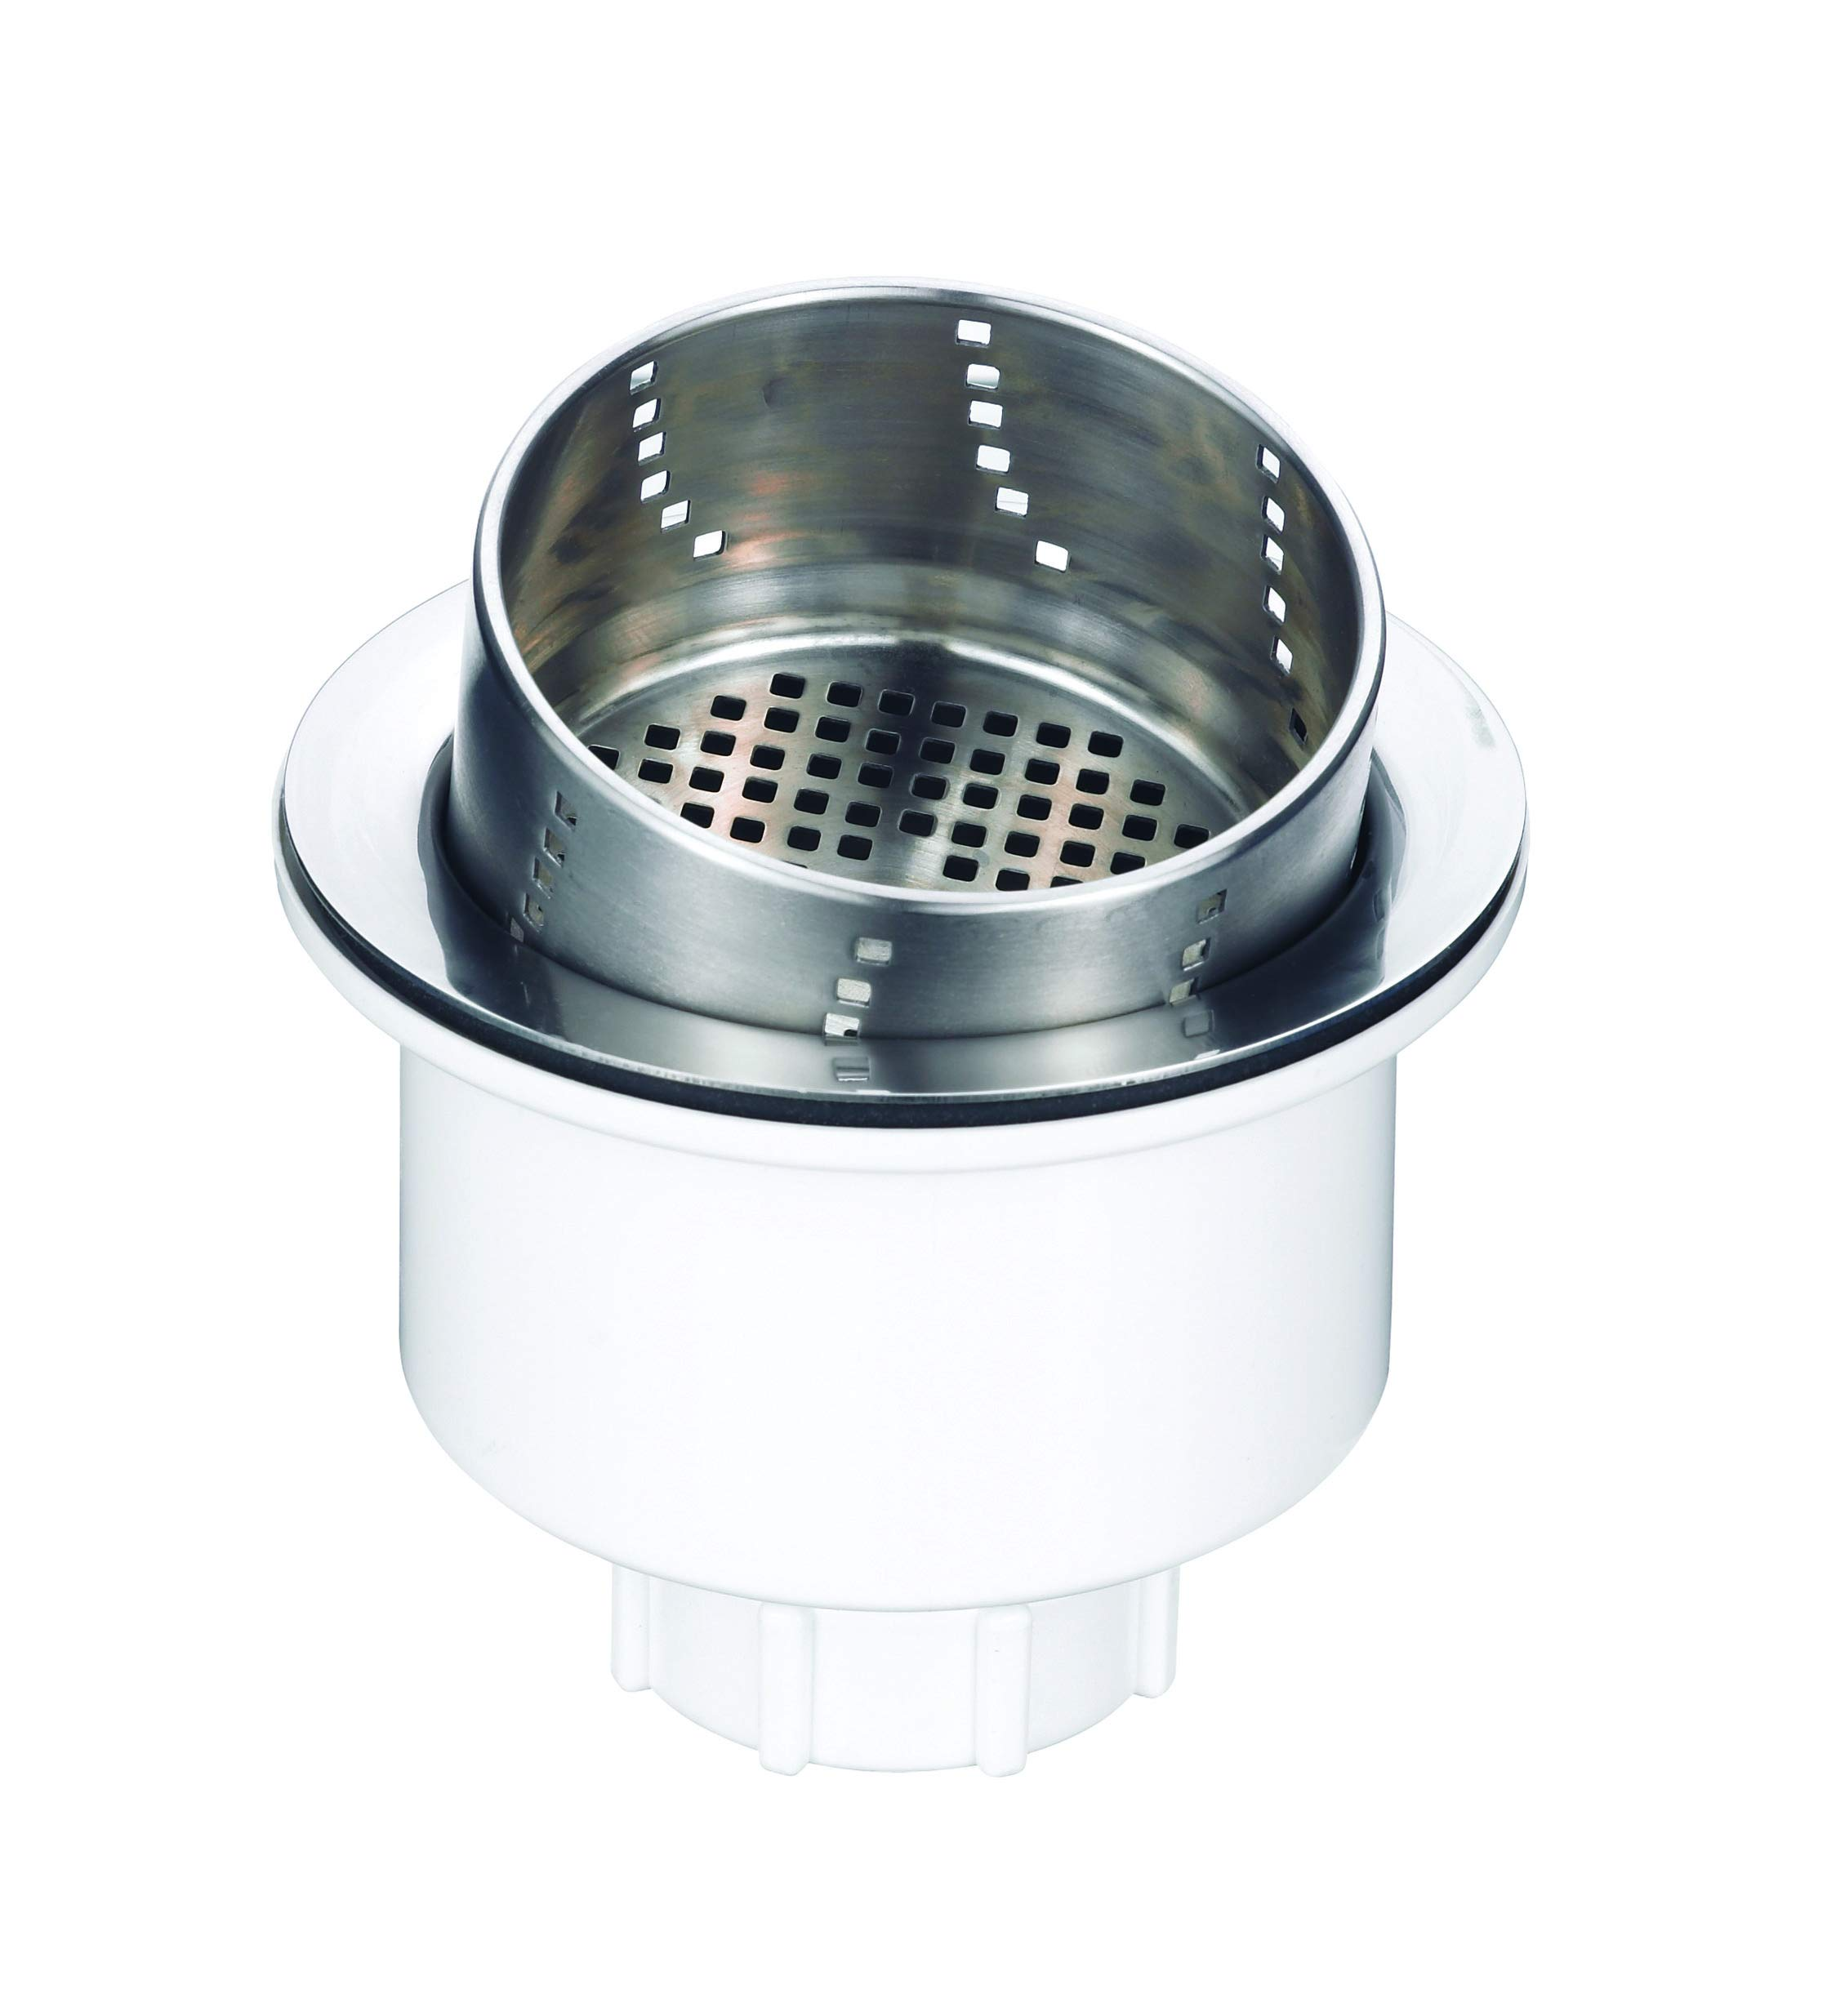 Blanco 441231 Accessories: 3-in-1 Basket Strainer, 3 in 1, Stainless Steel by BLANCO